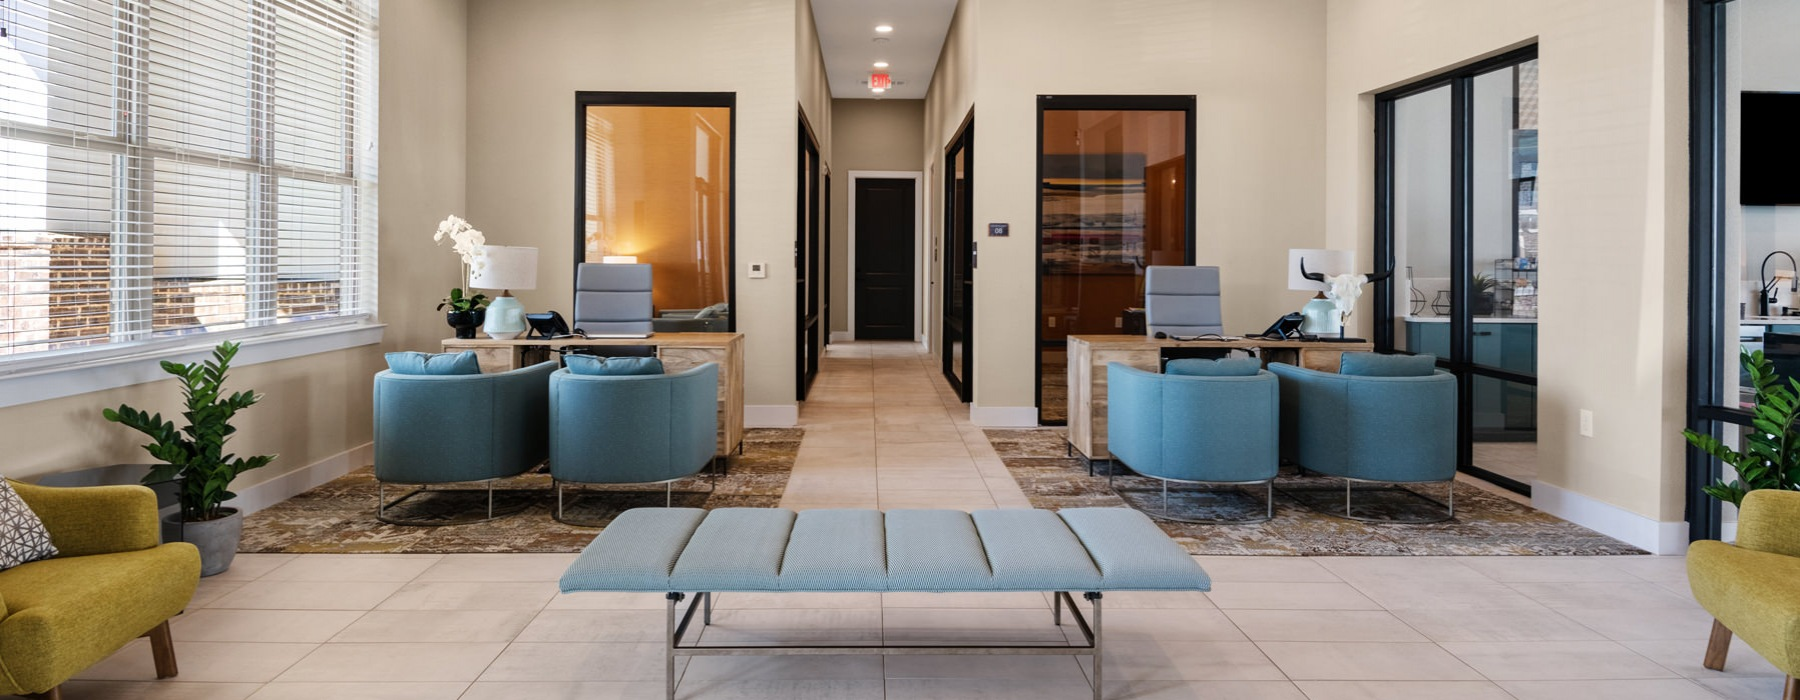 Beautiful lobby area with high ceilings and natural lighting